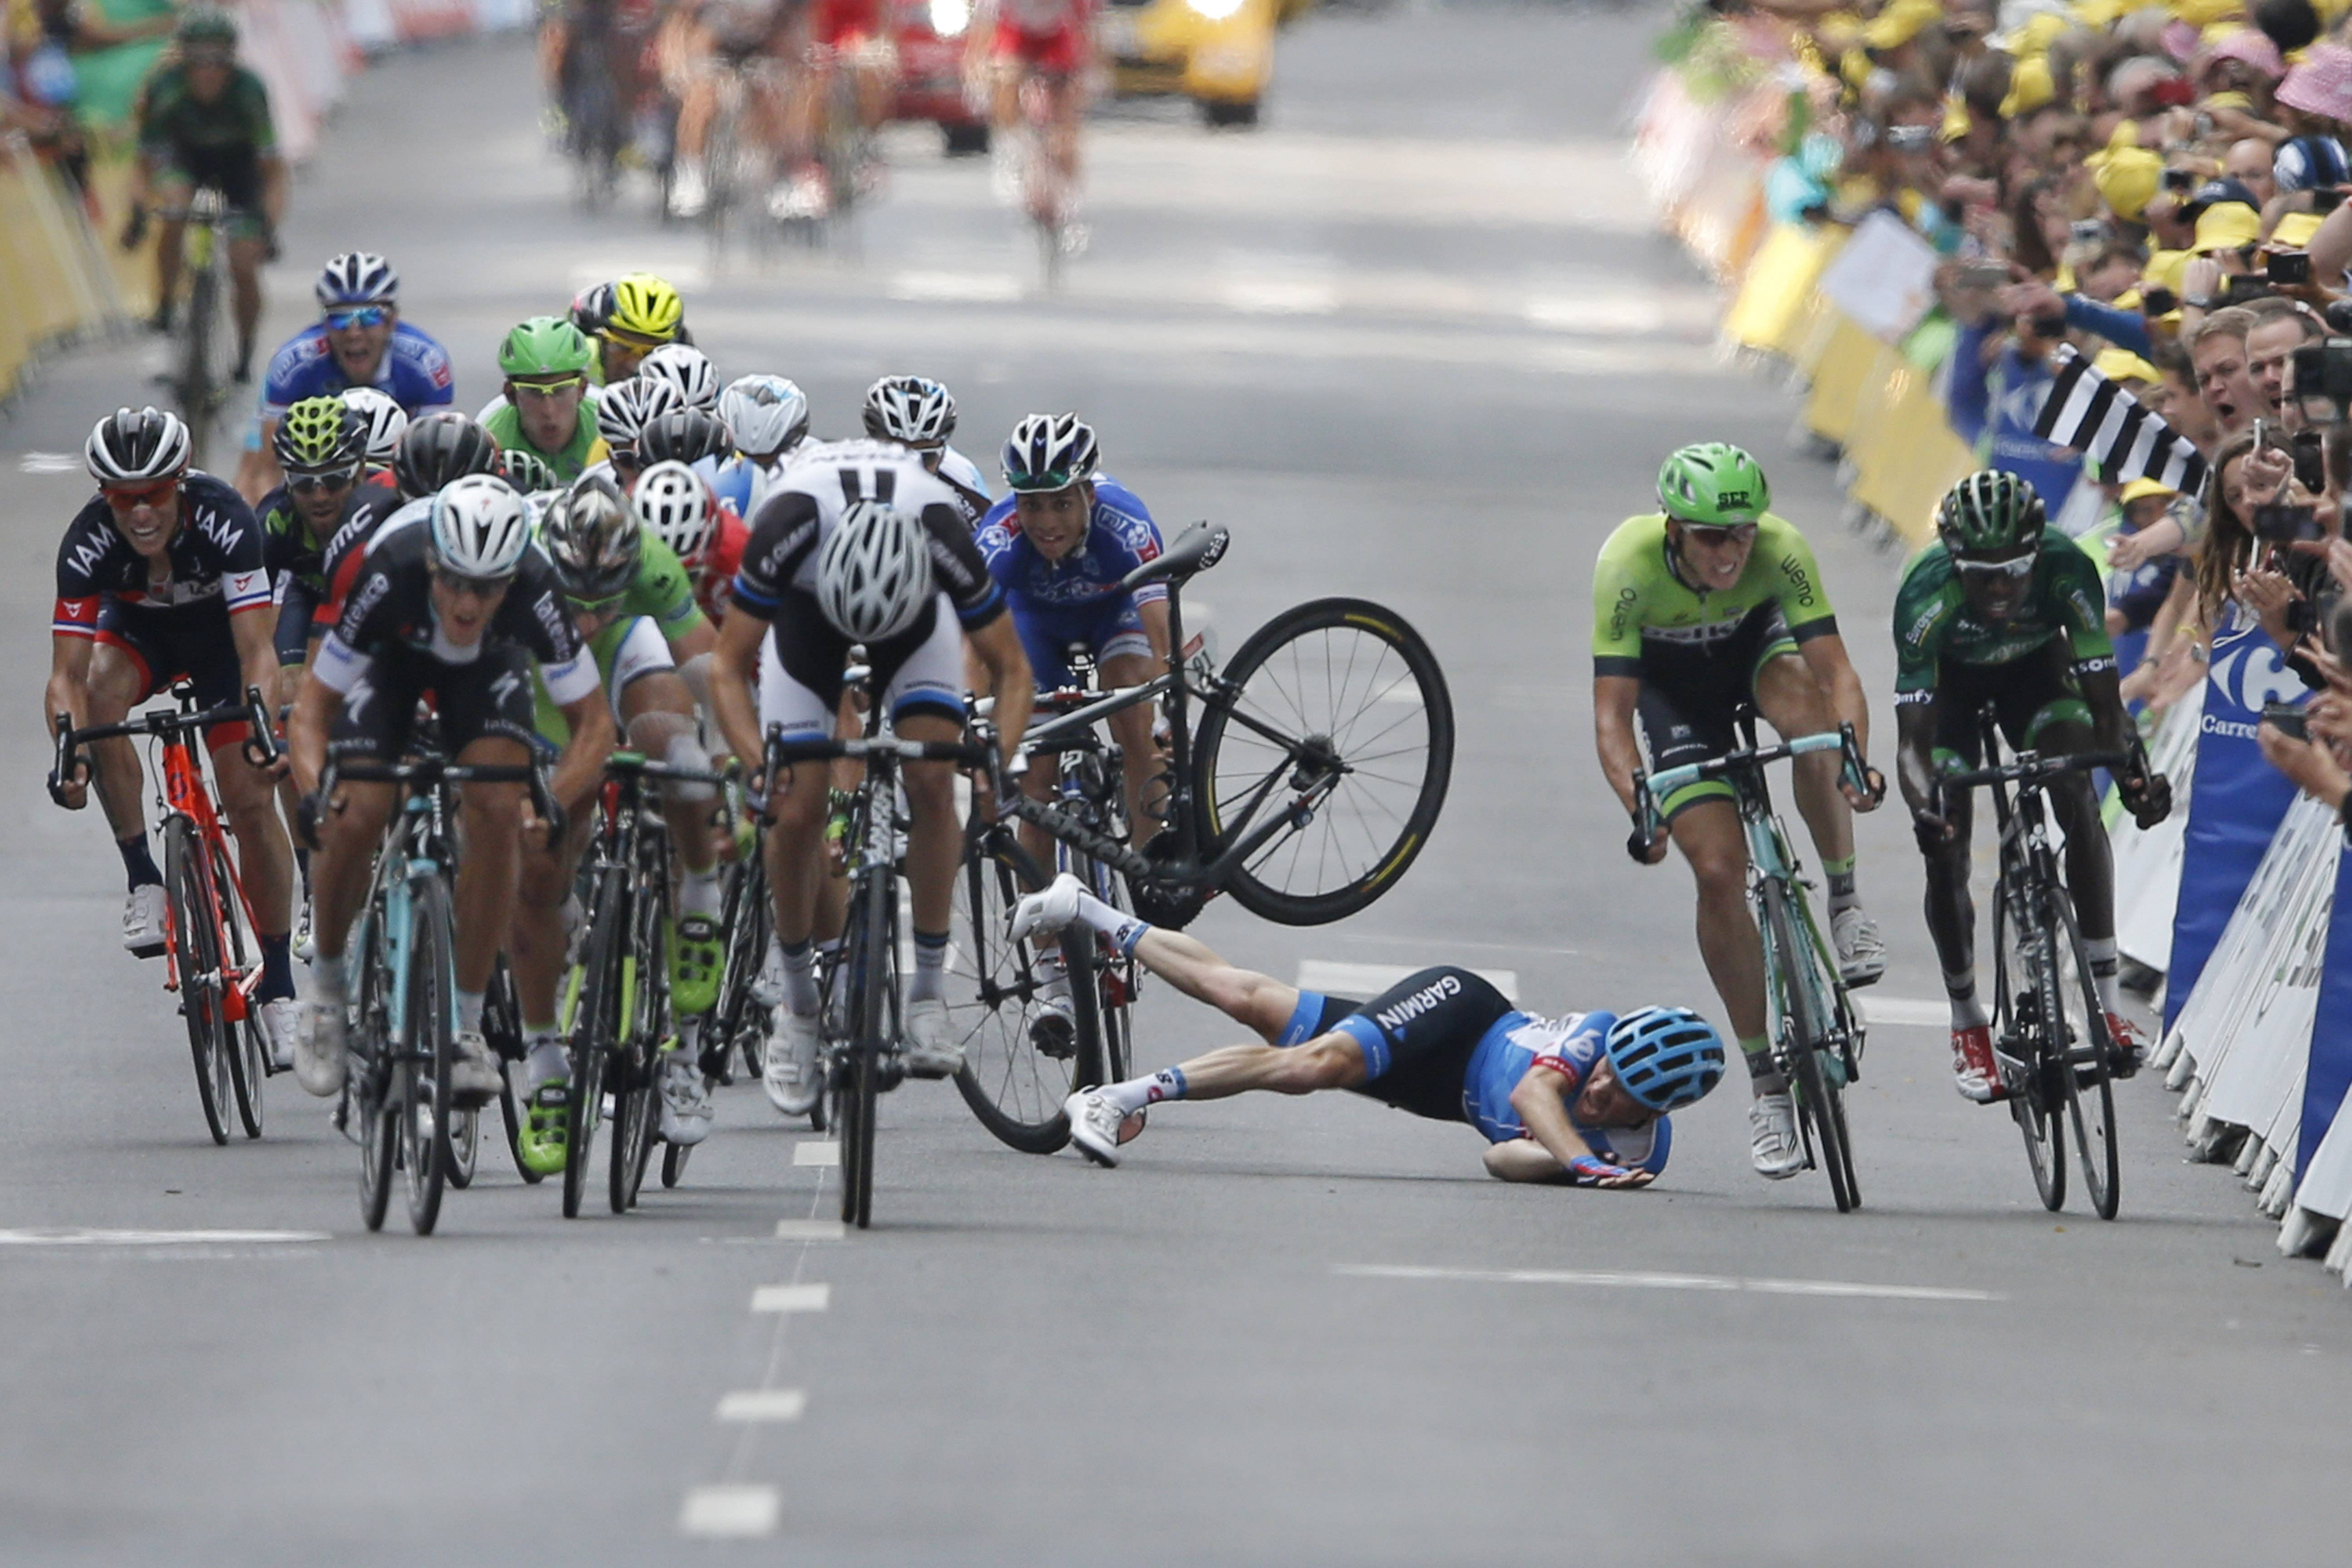 Andrew Talansky of the U.S. crashes as the pack with stage winner Italy's Matteo Trentin, foreground left, sprints towards the finish line during the seventh stage of the Tour de France cycling race over 234.5 kilometers (145.7 miles) with start in Epernay and finish in Nancy, France, Friday, July 11, 2014. (AP Photo/Peter Dejong)